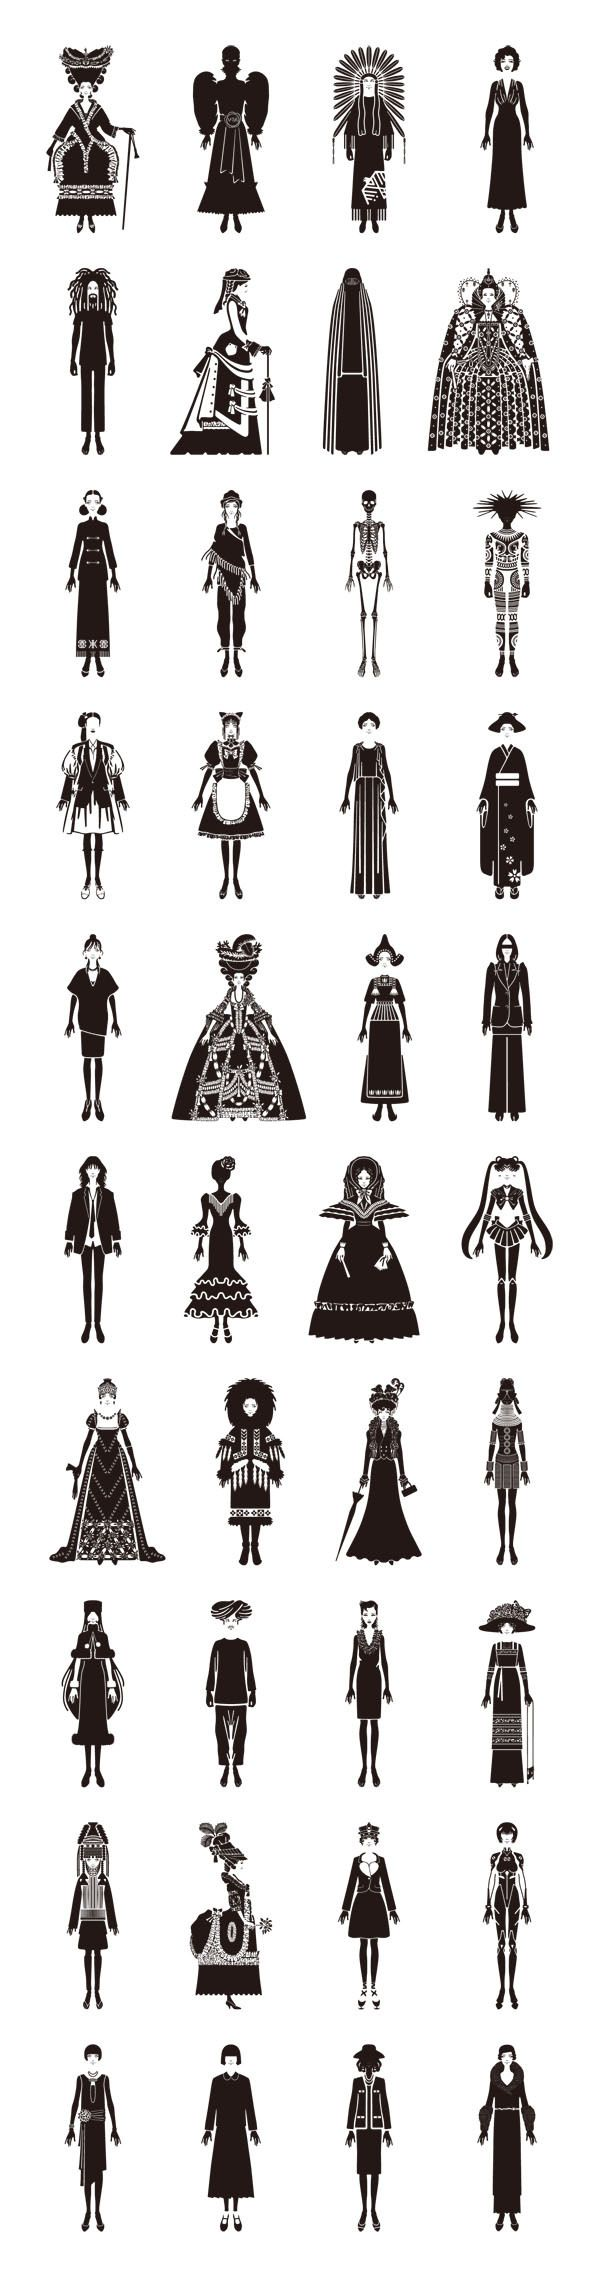 These silhouettes are amazing! And I spy sailor moon and tron!! :) Would make an awesome tattoo, I love the indian one with the headdress